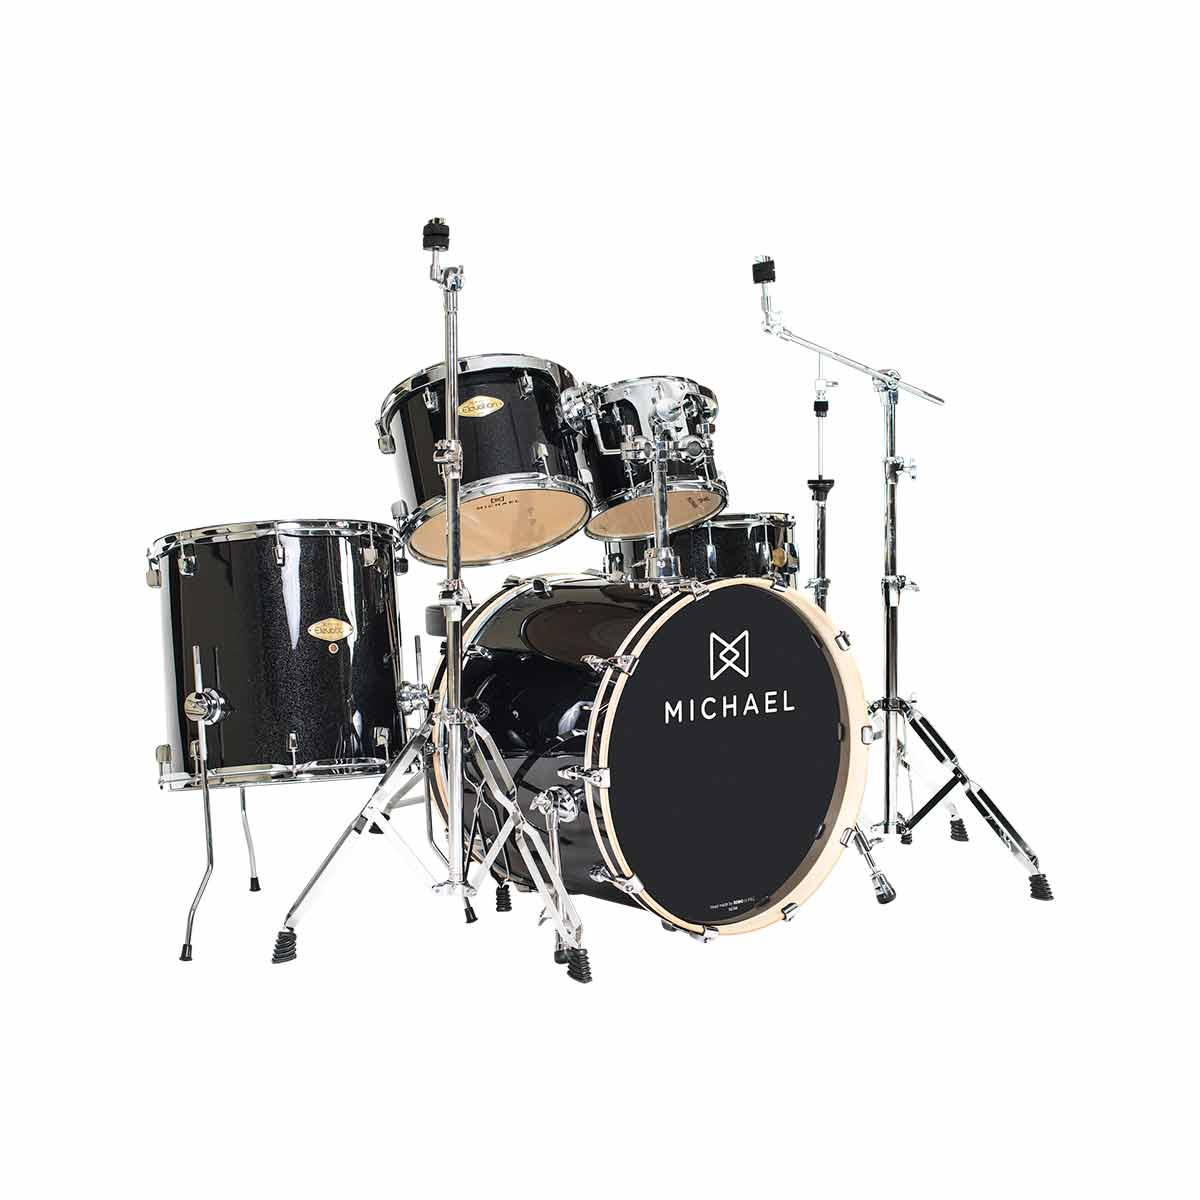 Bateria Ac�stica Bumbo 18 Polegadas Elevation DM851 BKS Preta Sparkle - Michael